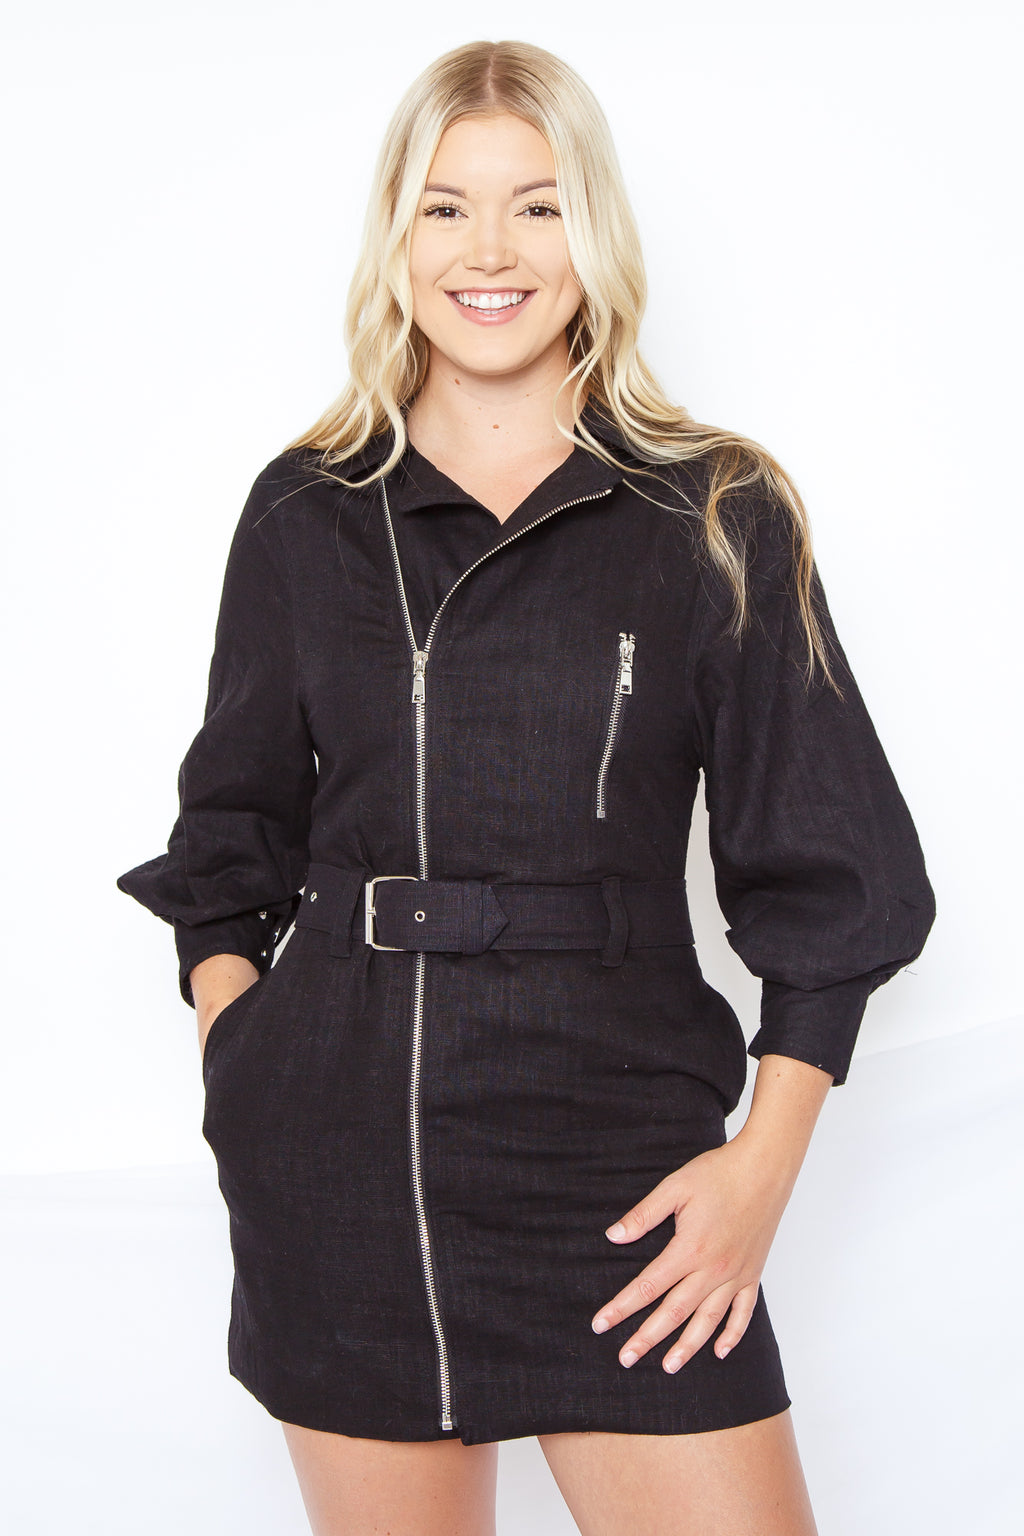 Cleo Zip Up Dress